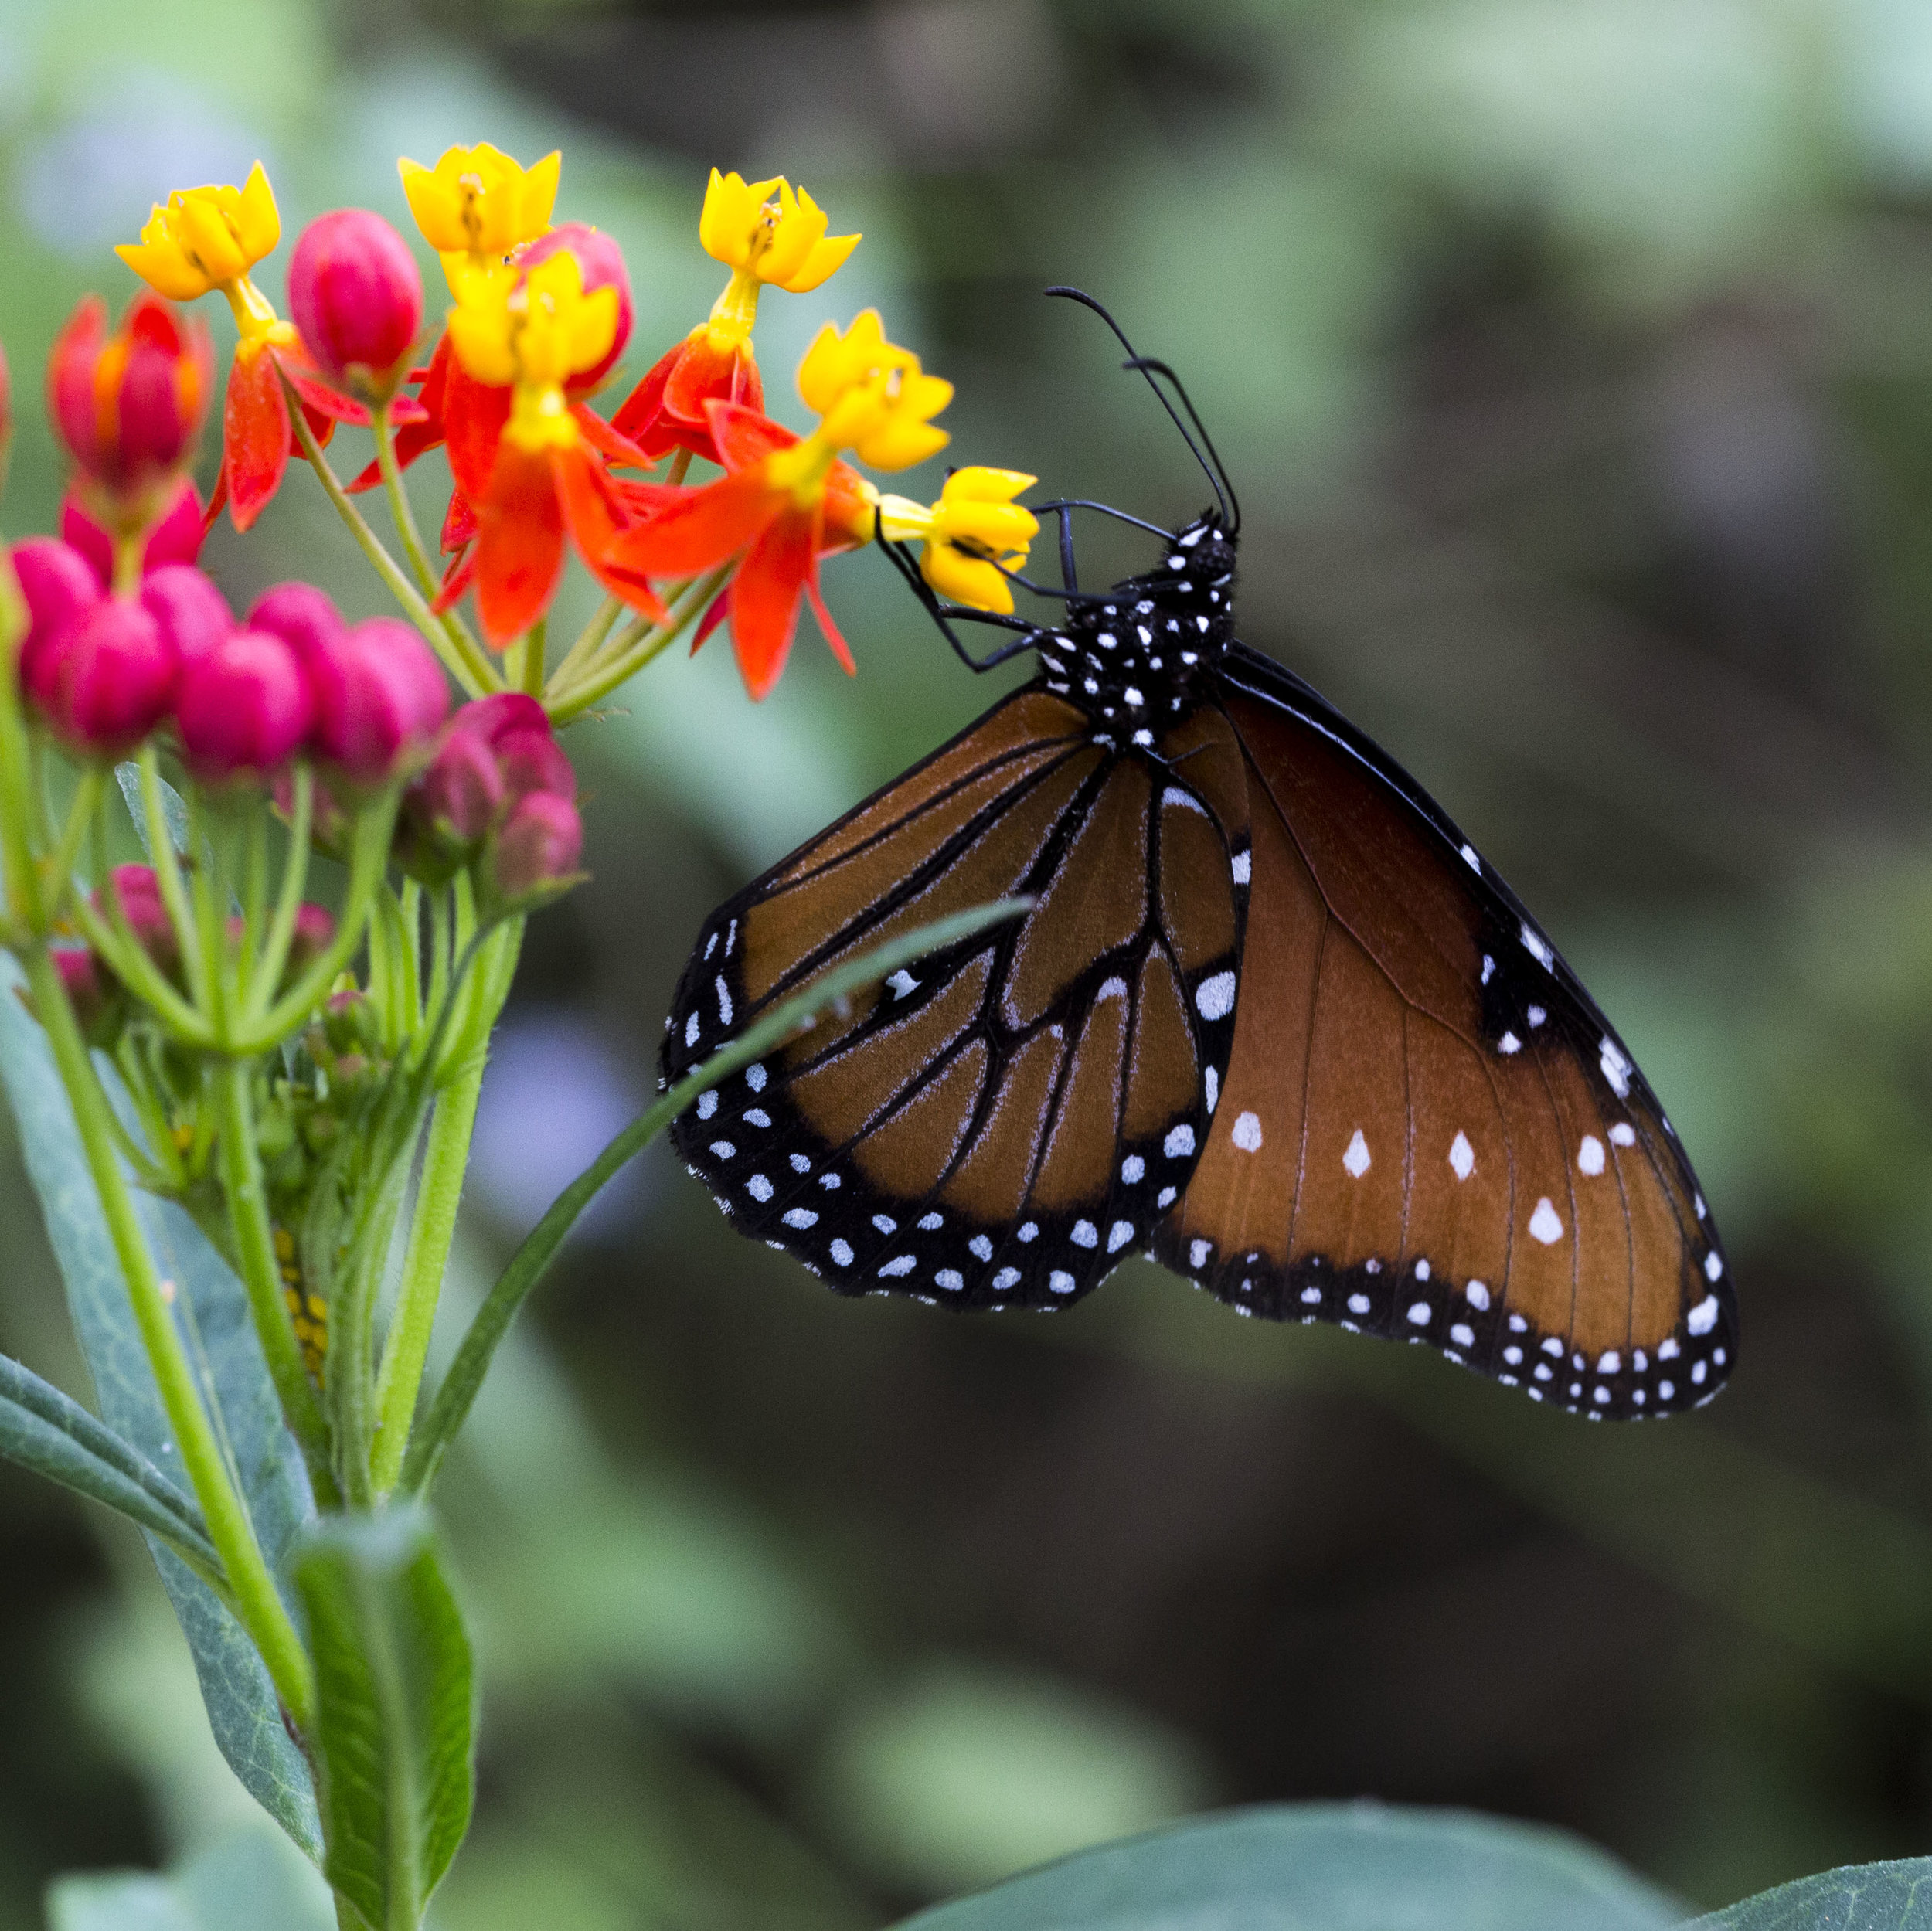 A queen butterfly sips nectar from a flower in the Lower Rio Grande Valley of Texas.